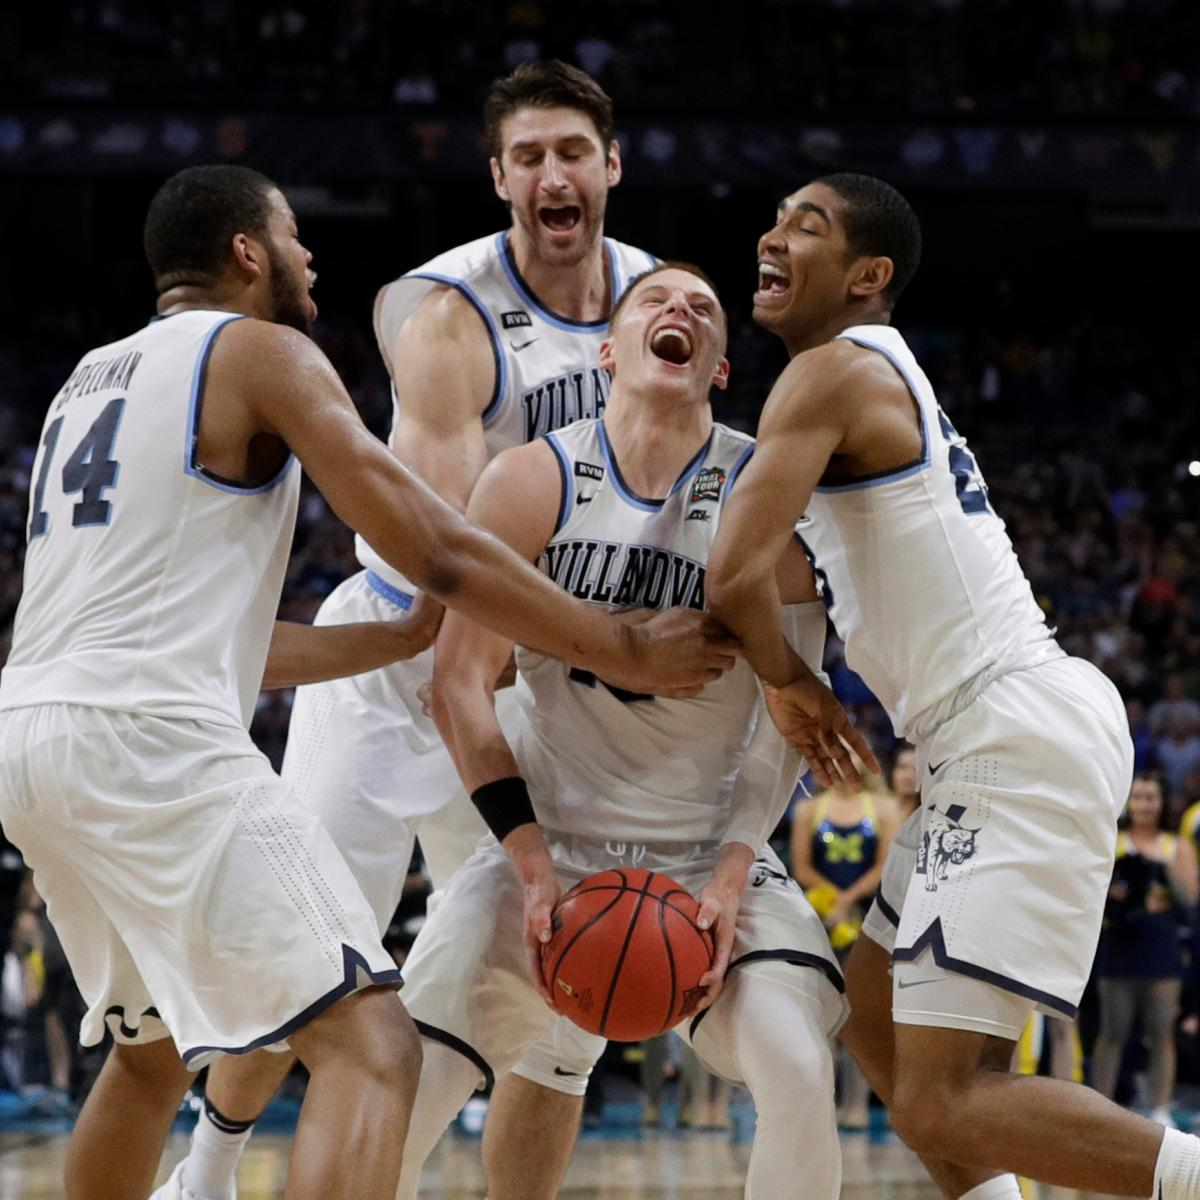 Biggest Winners And Losers Of The 2018 NCAA Basketball